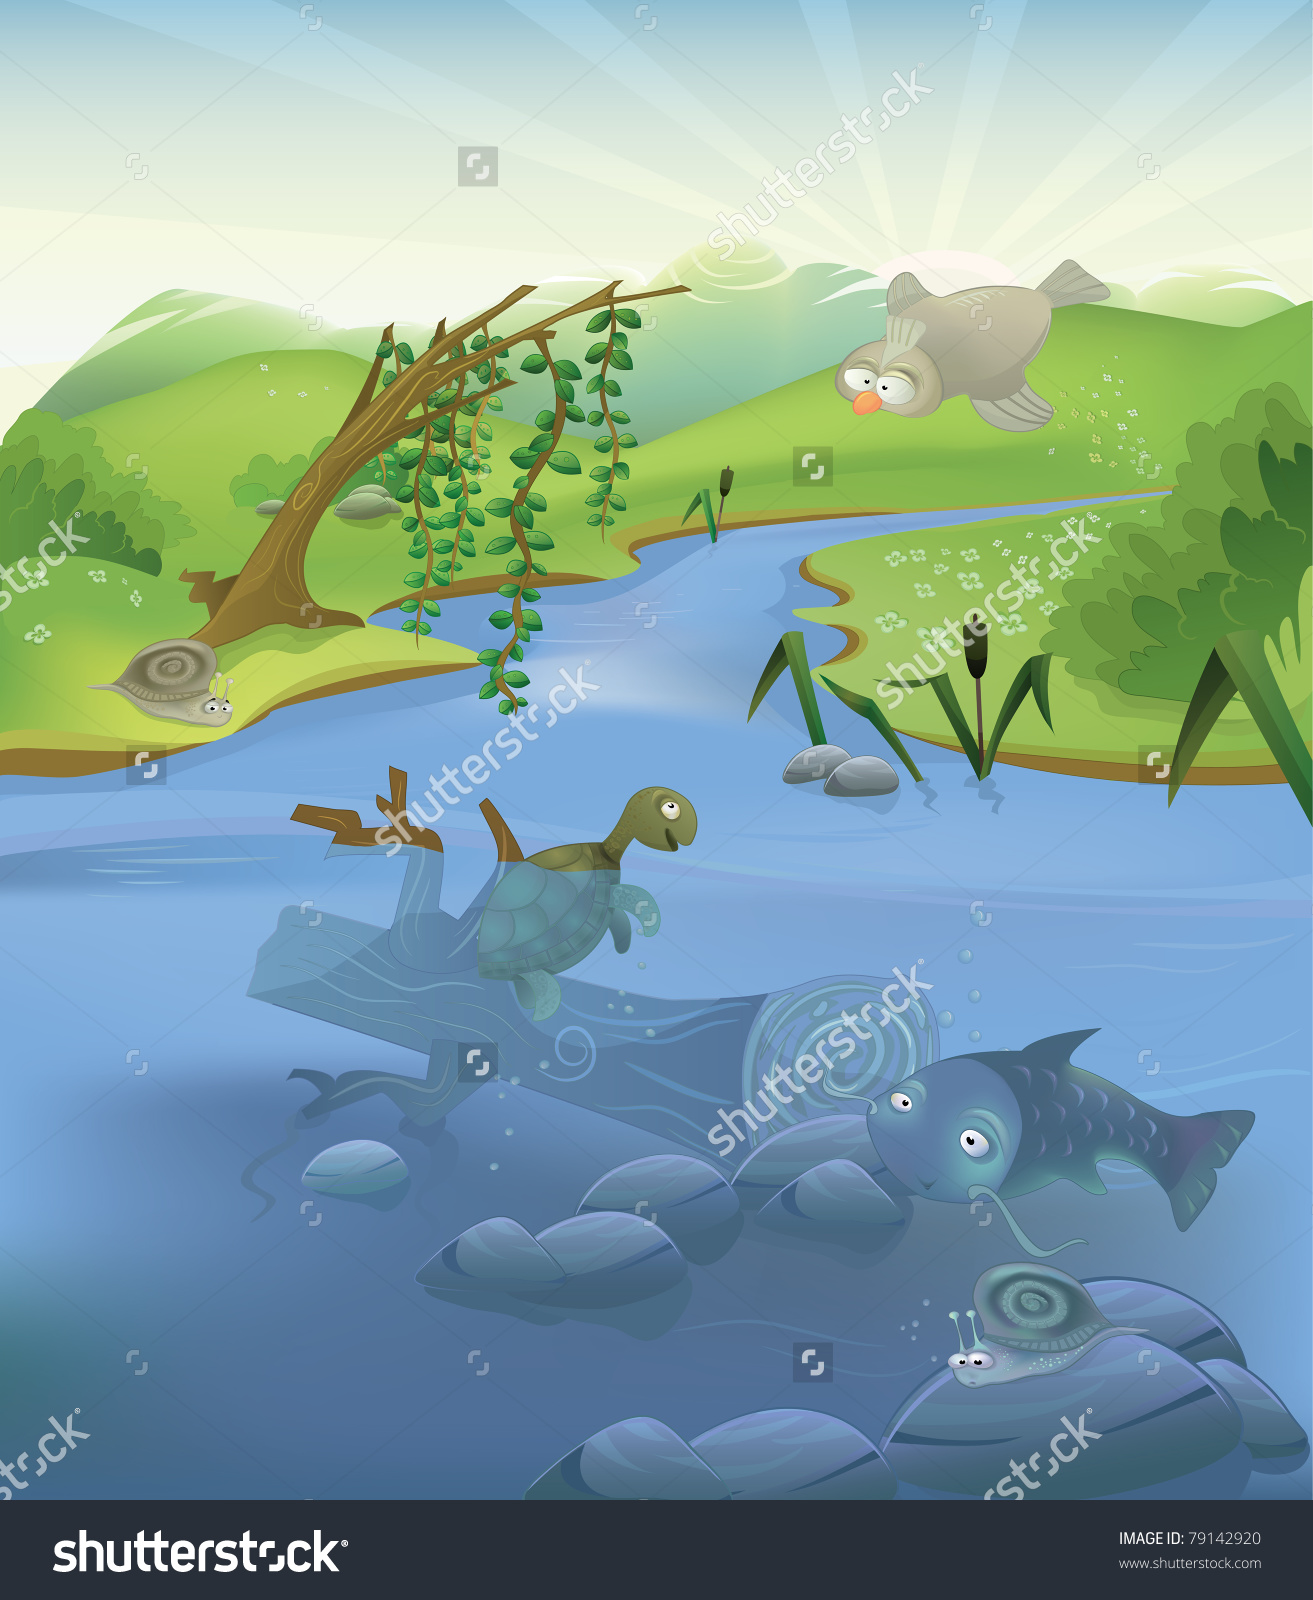 Vector River Illustration With Set Of Animals: Two Snails, Turtle.